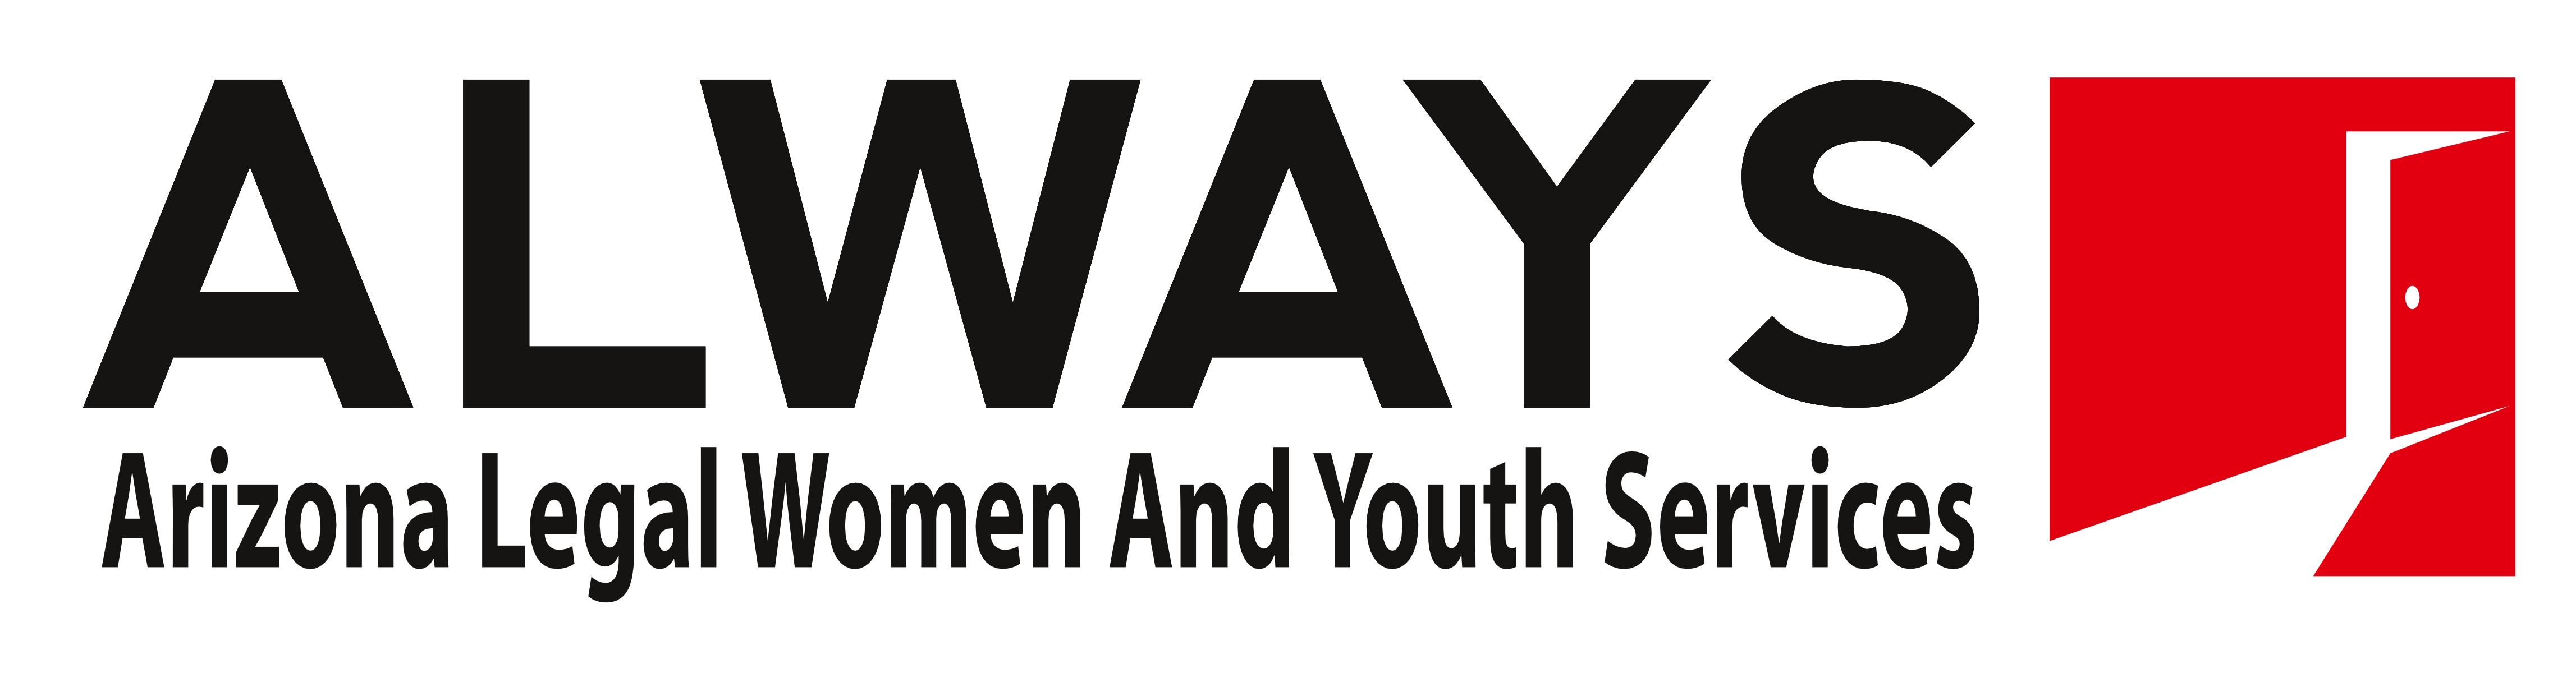 Arizona Legal Women and Youth Services logo